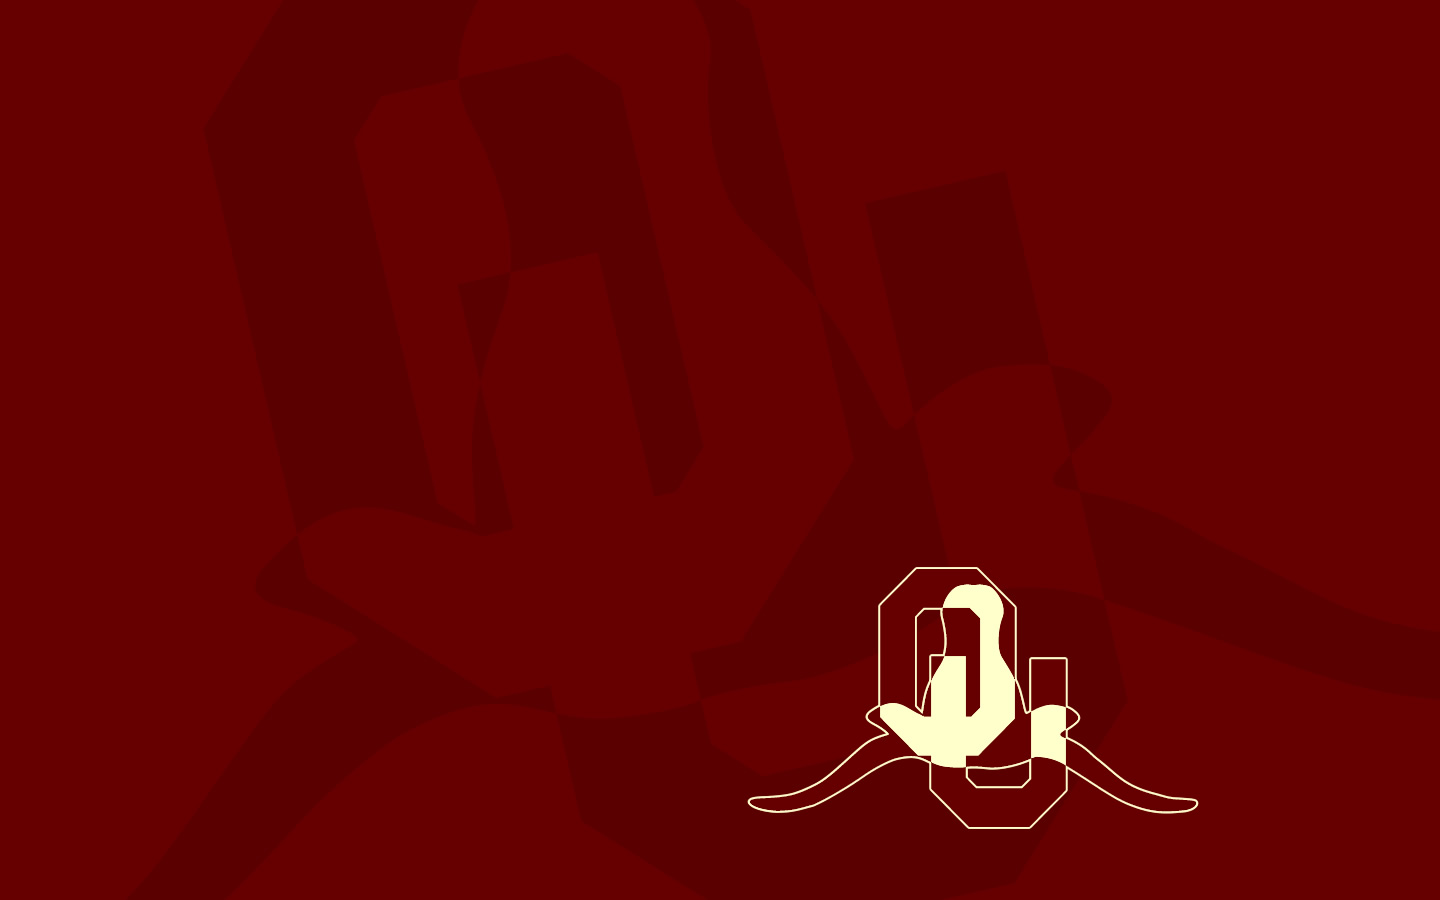 University Of Oklahoma Football Wallpaper Tims saxet backgrouds 1440x900